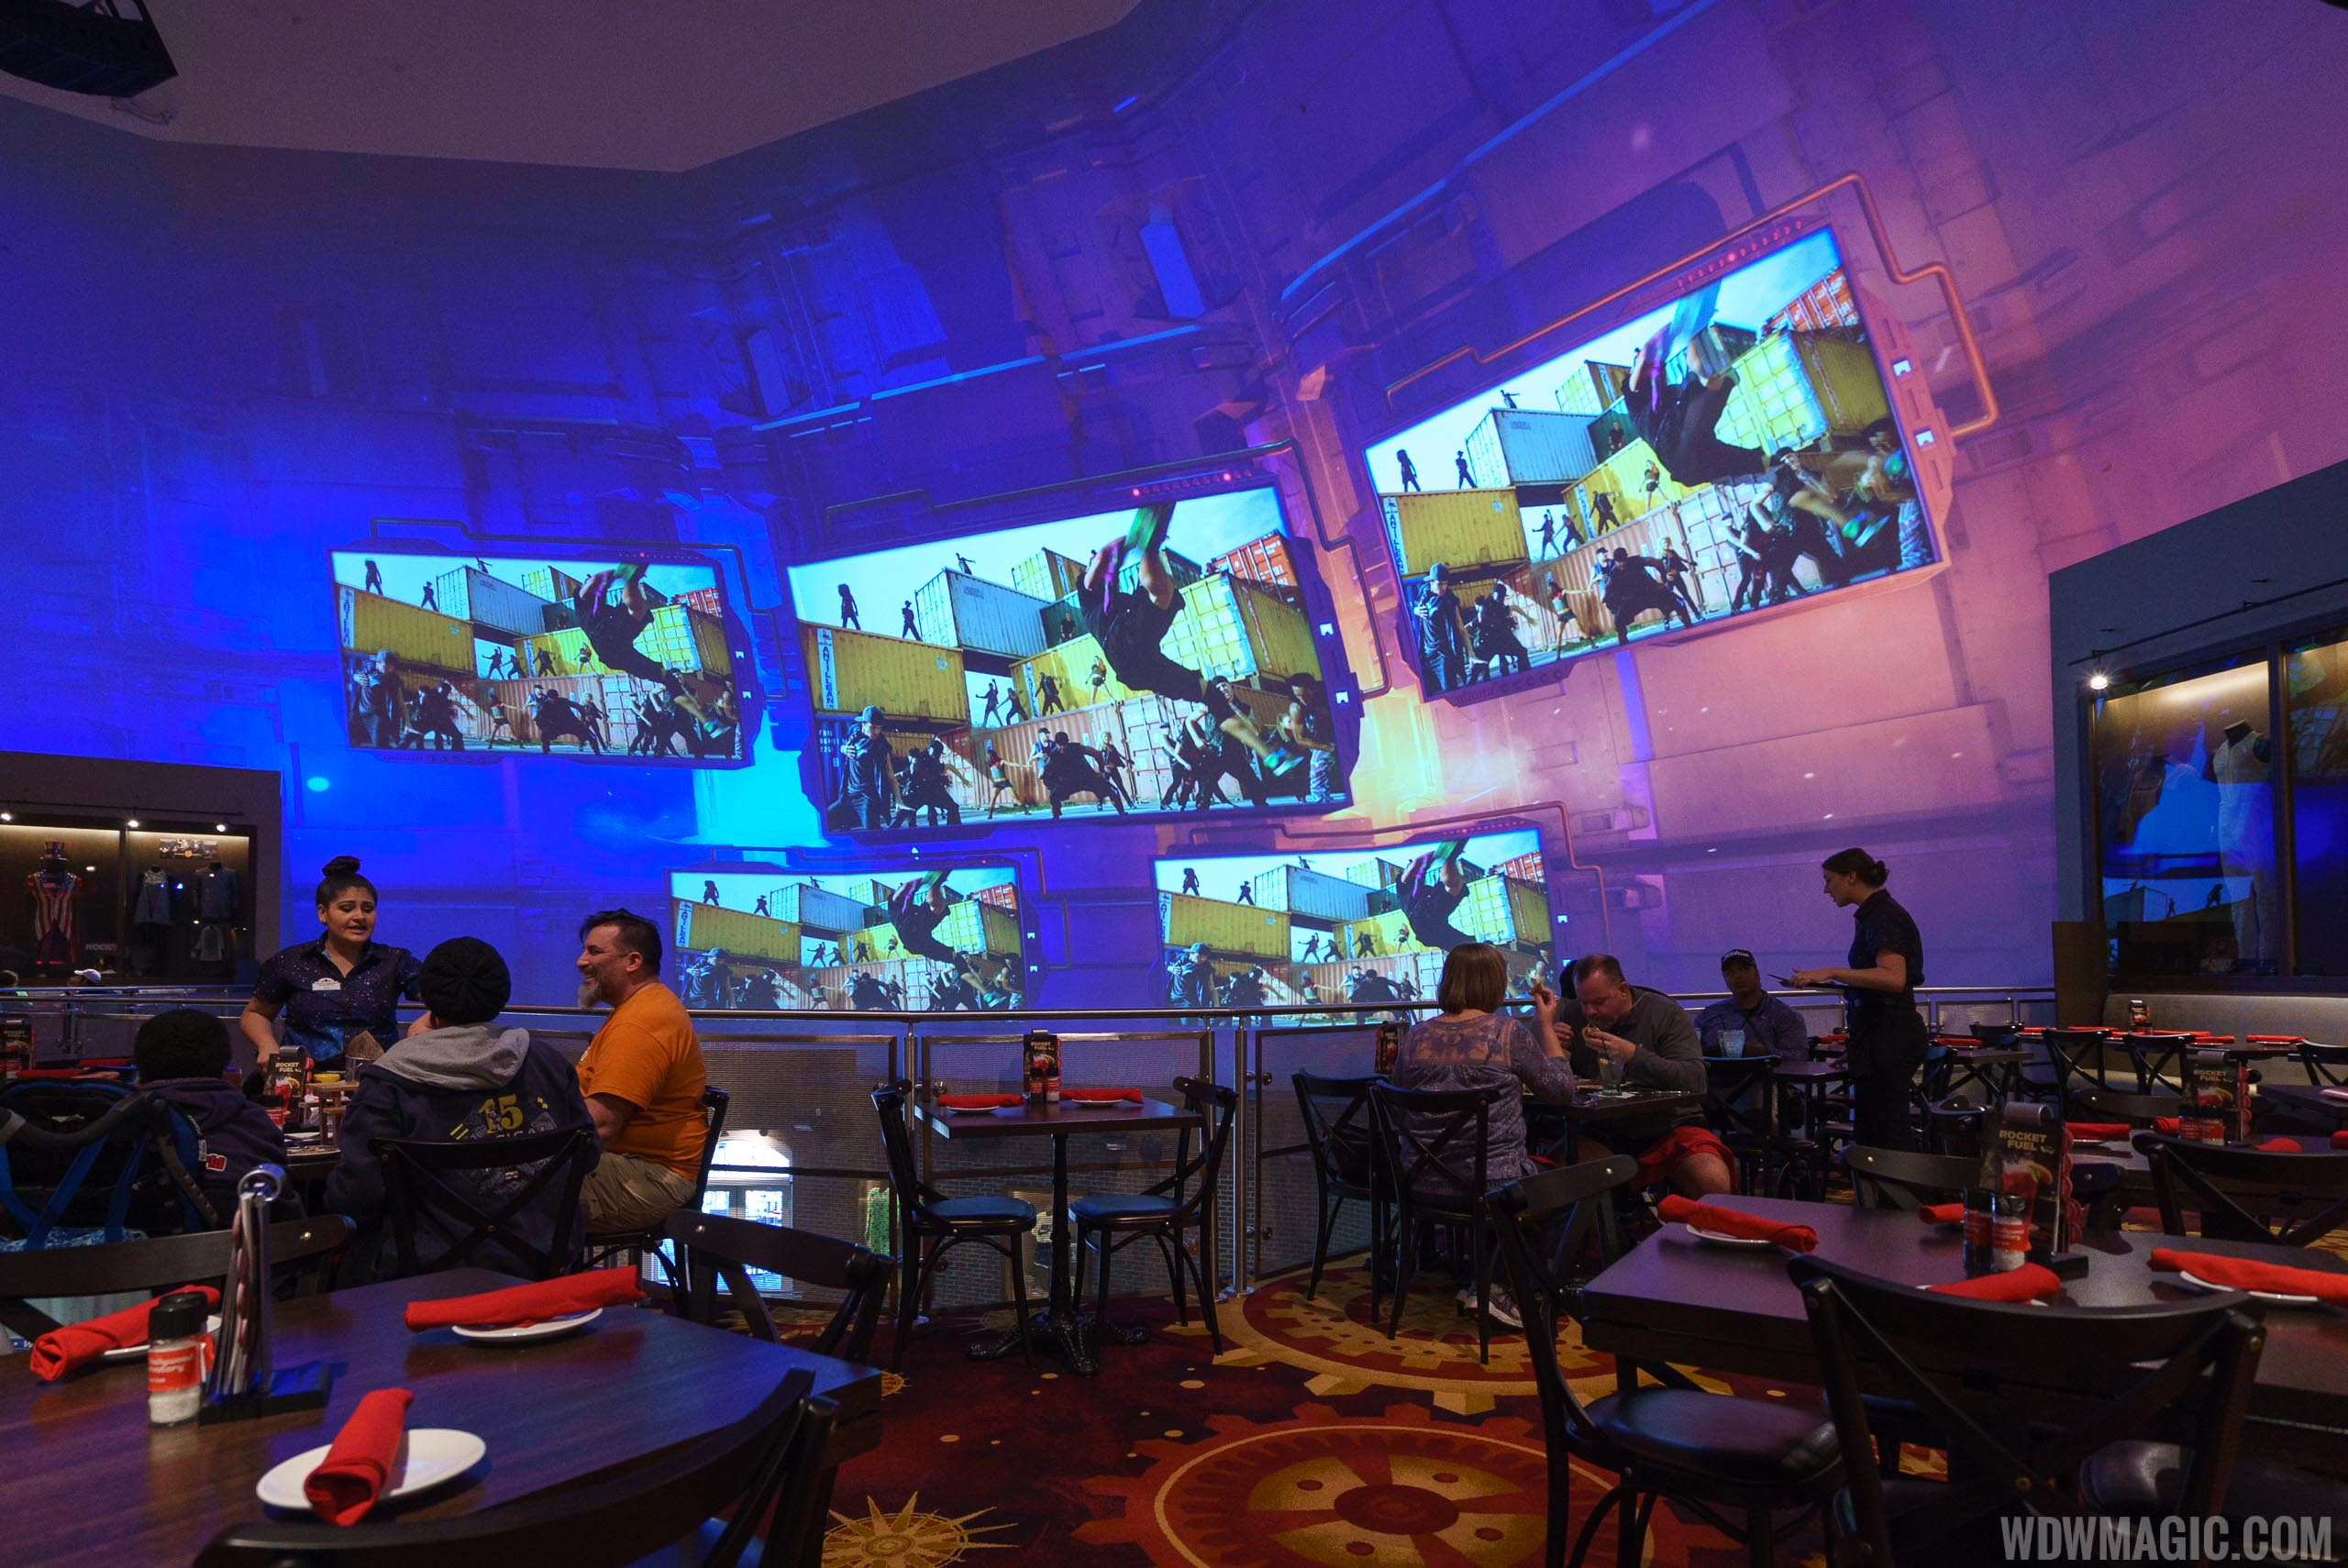 Planet Hollywood Observatory - Second level view of video wall